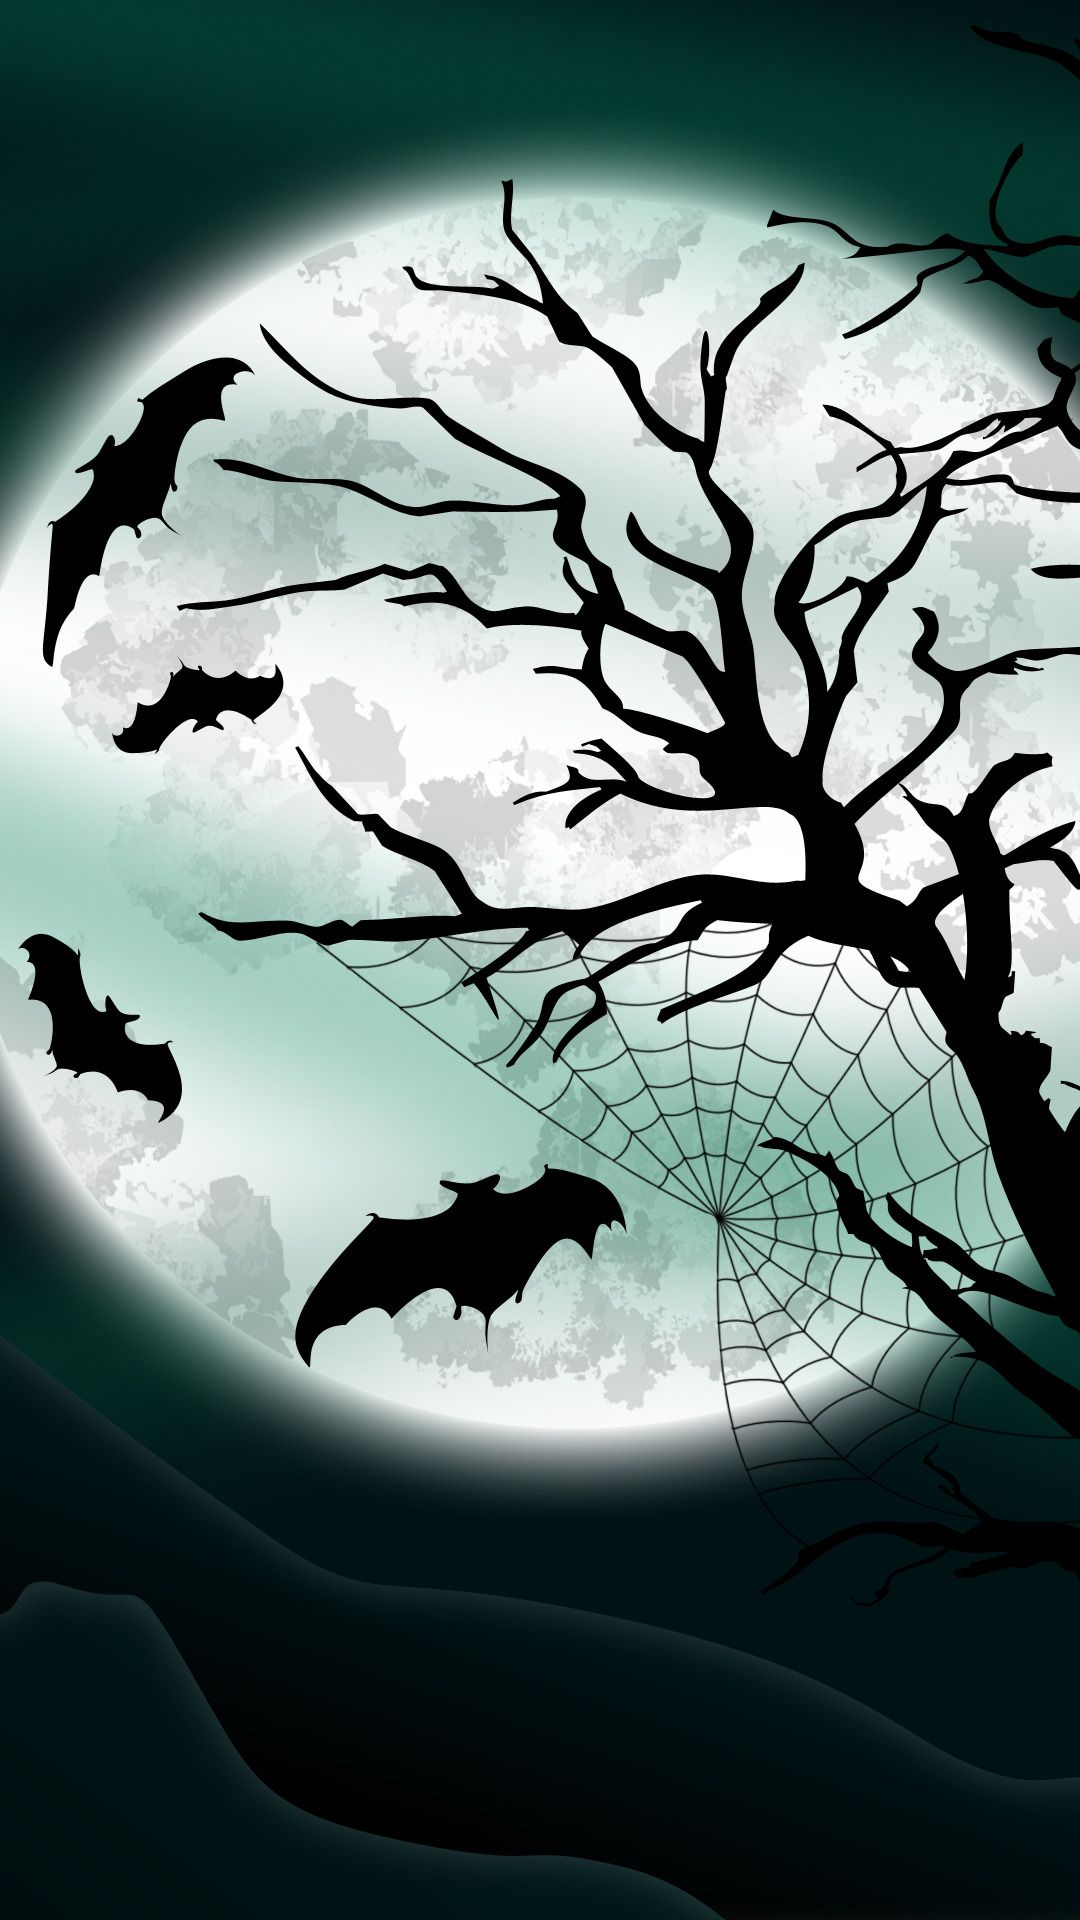 Popular Wallpaper Halloween Smartphone - 5c8bae9589b35868c84dfce31410418a  Picture_152118.jpg